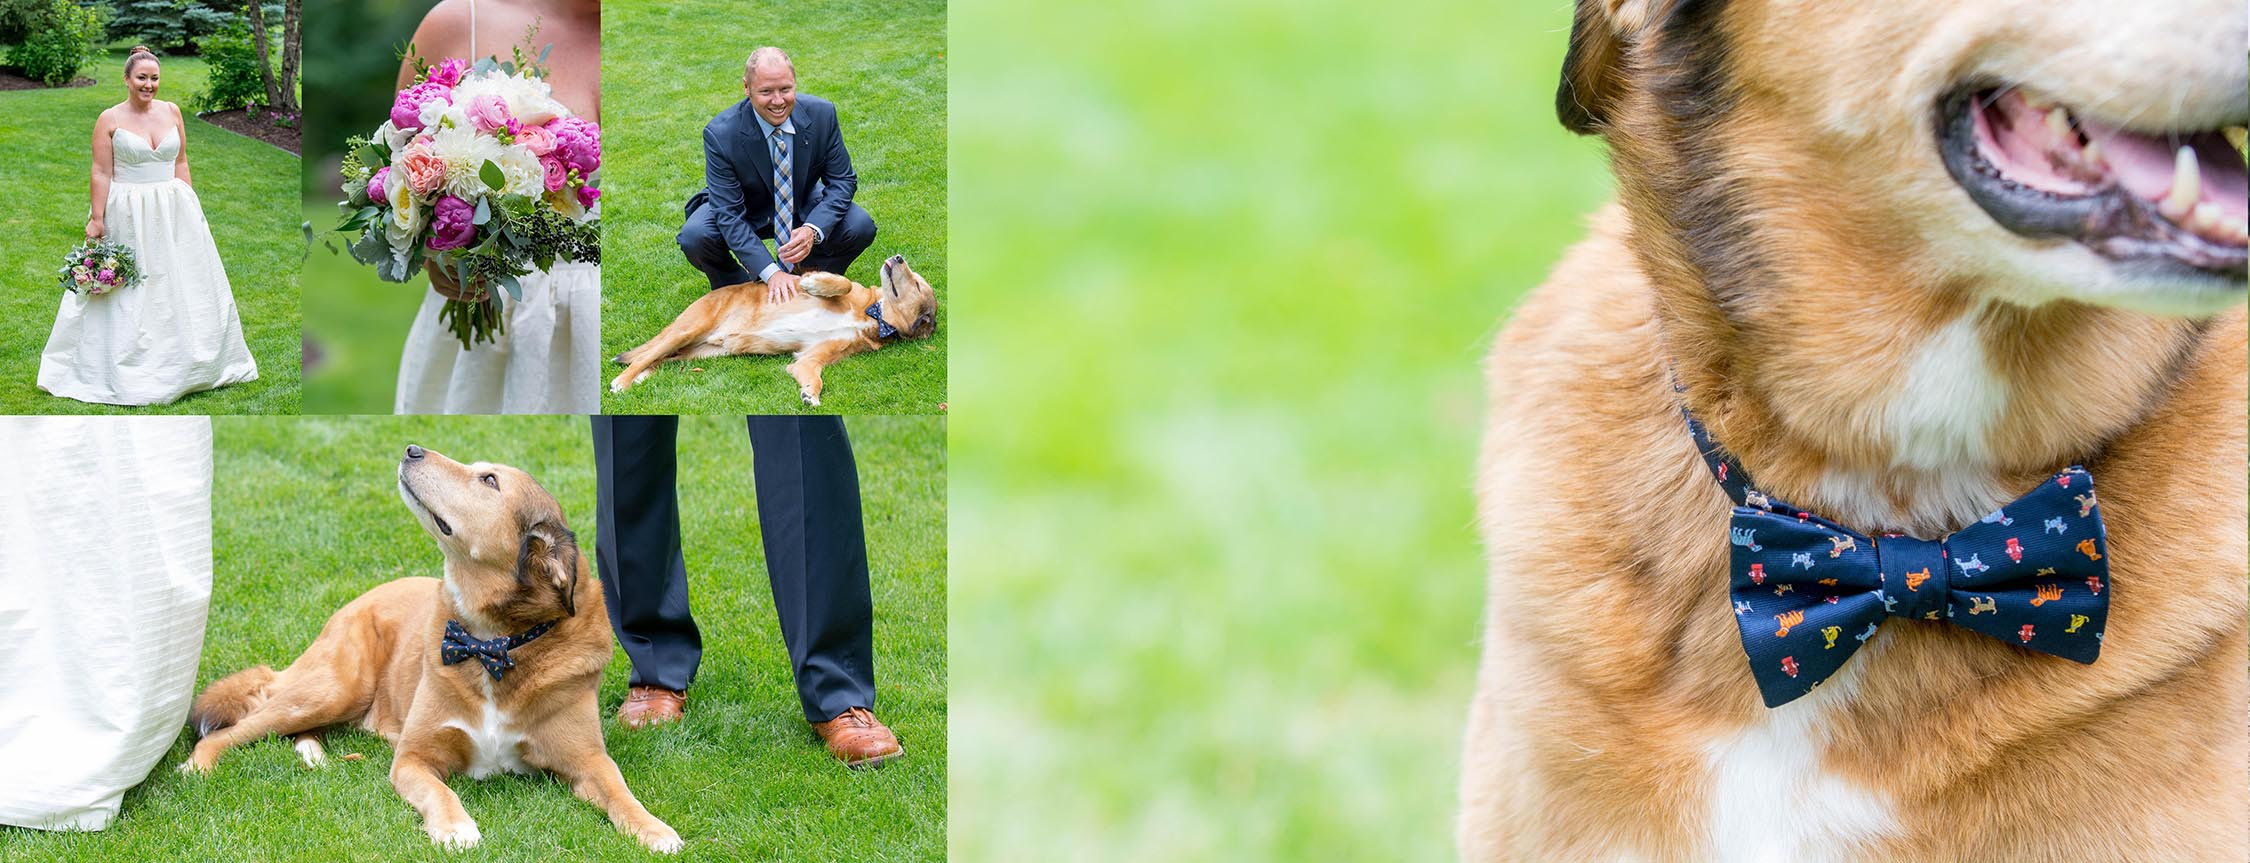 Wedding Photographers for pet lovers